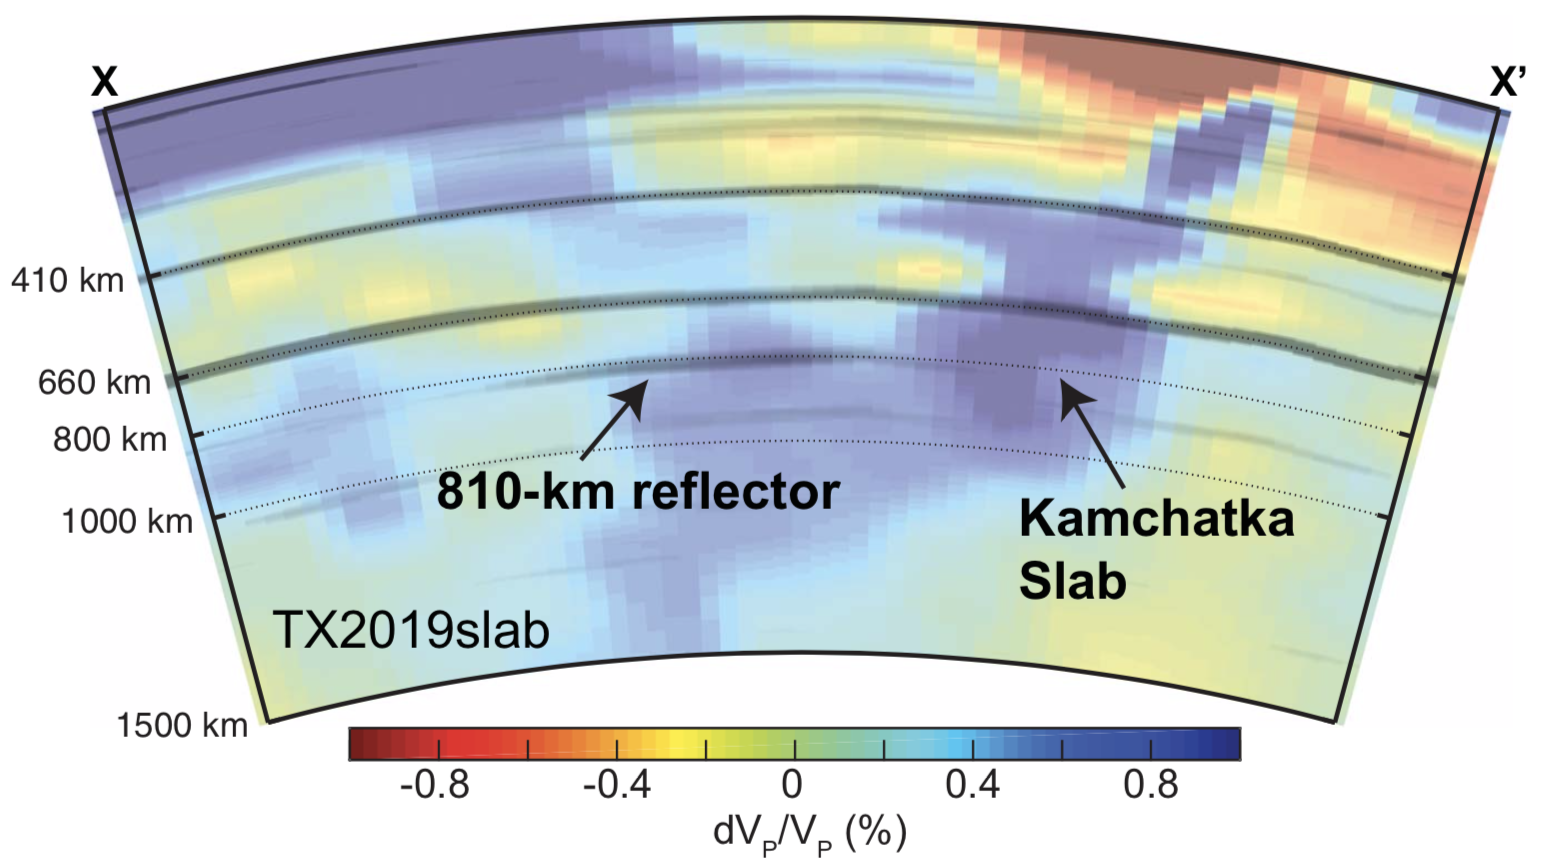 810-kilometer reflector indicating a mineralogical phase changee